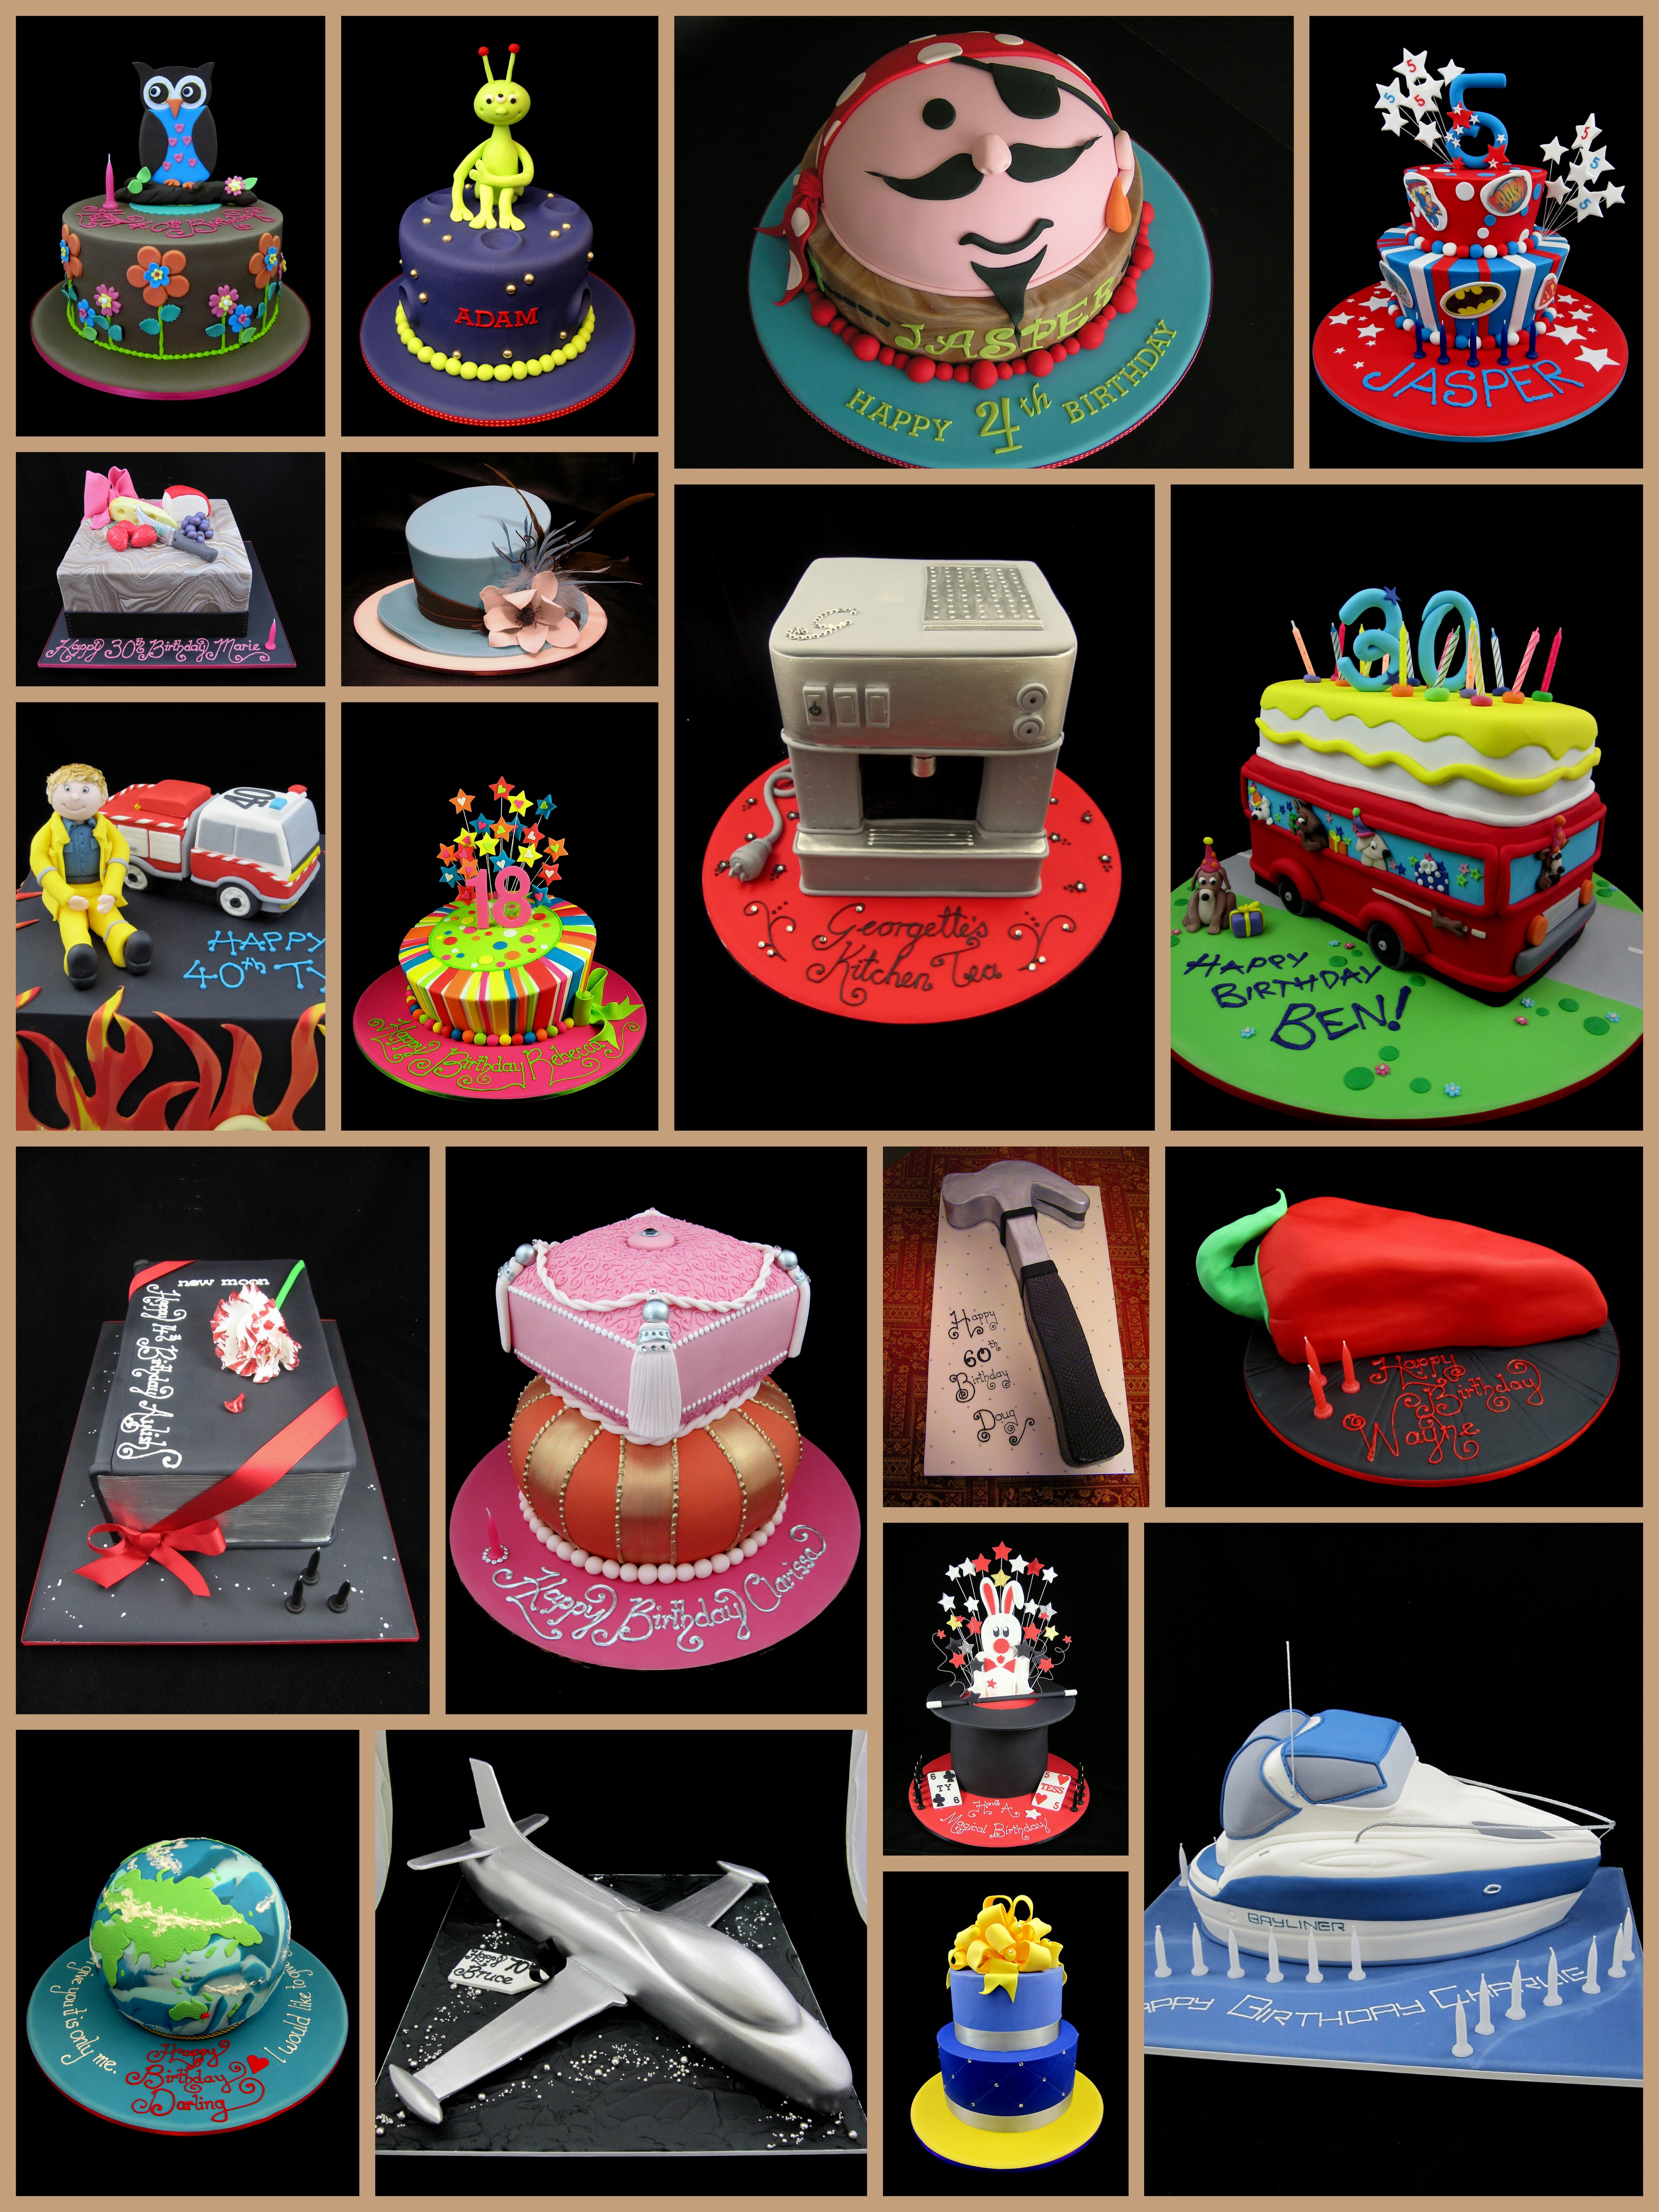 Fun Cake Designs Novelty Cakes Inspired By Michelle